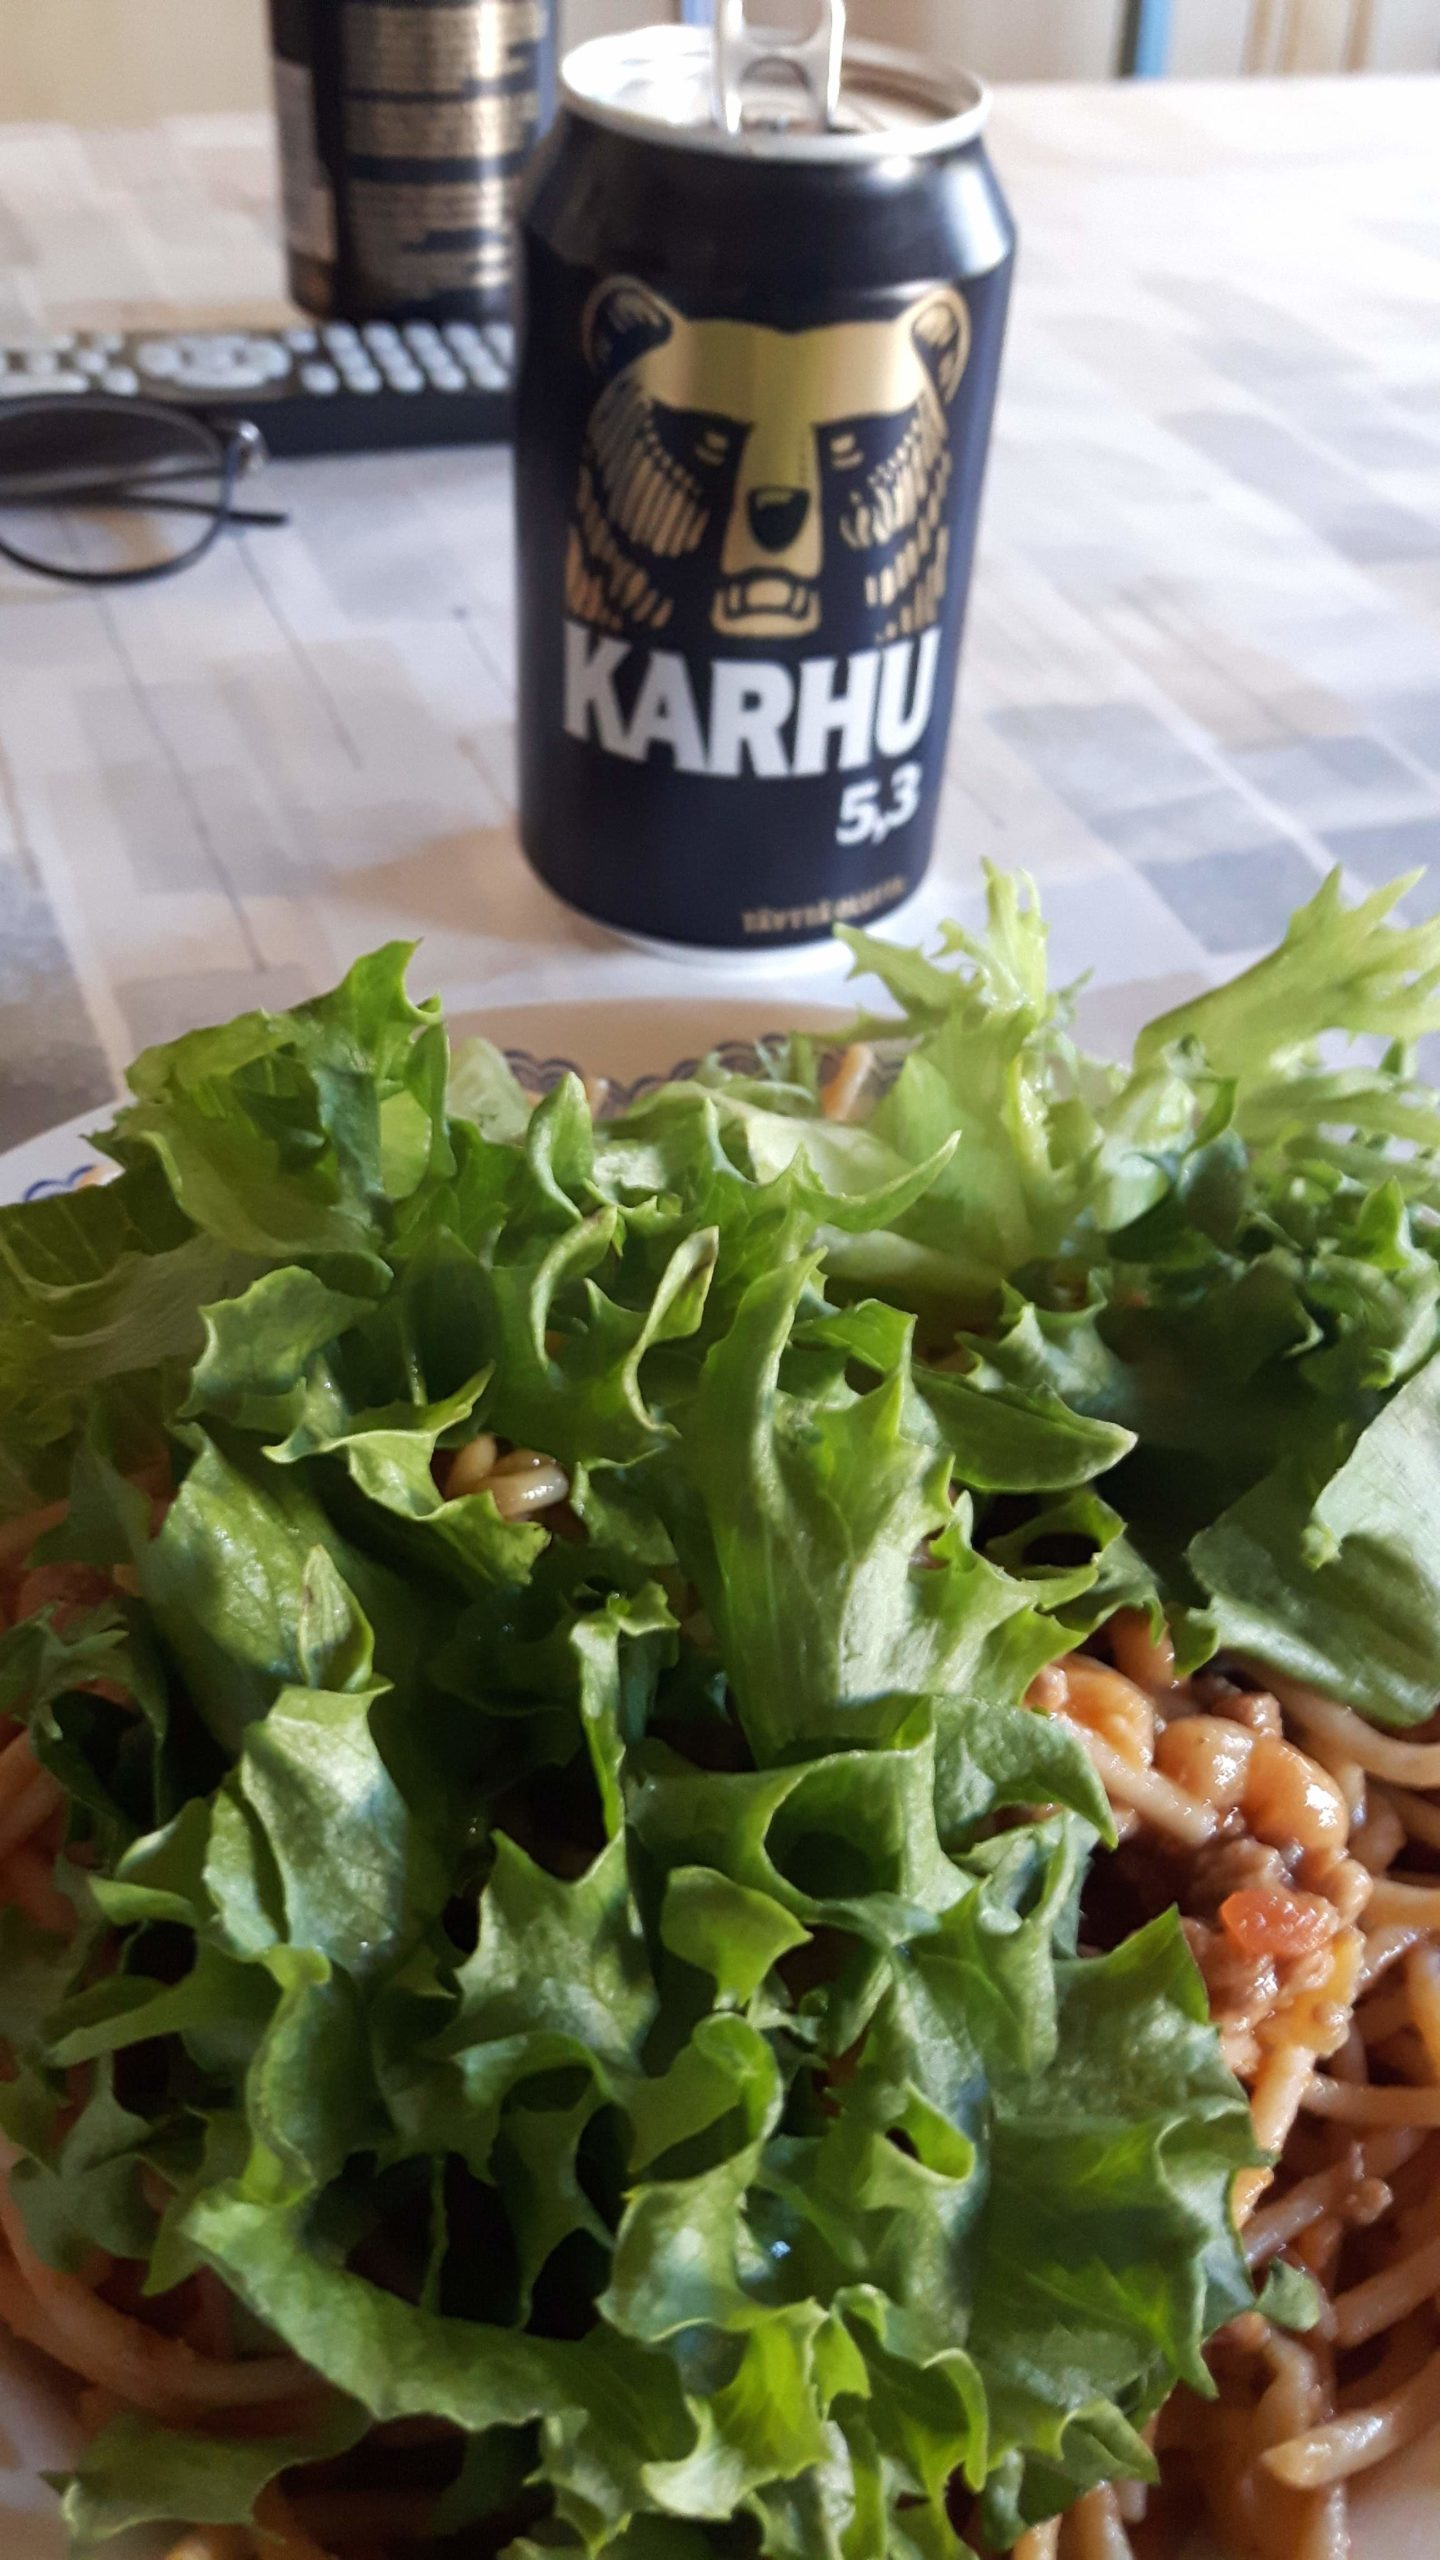 A Karhu Beer with Pasta Voutso Finland